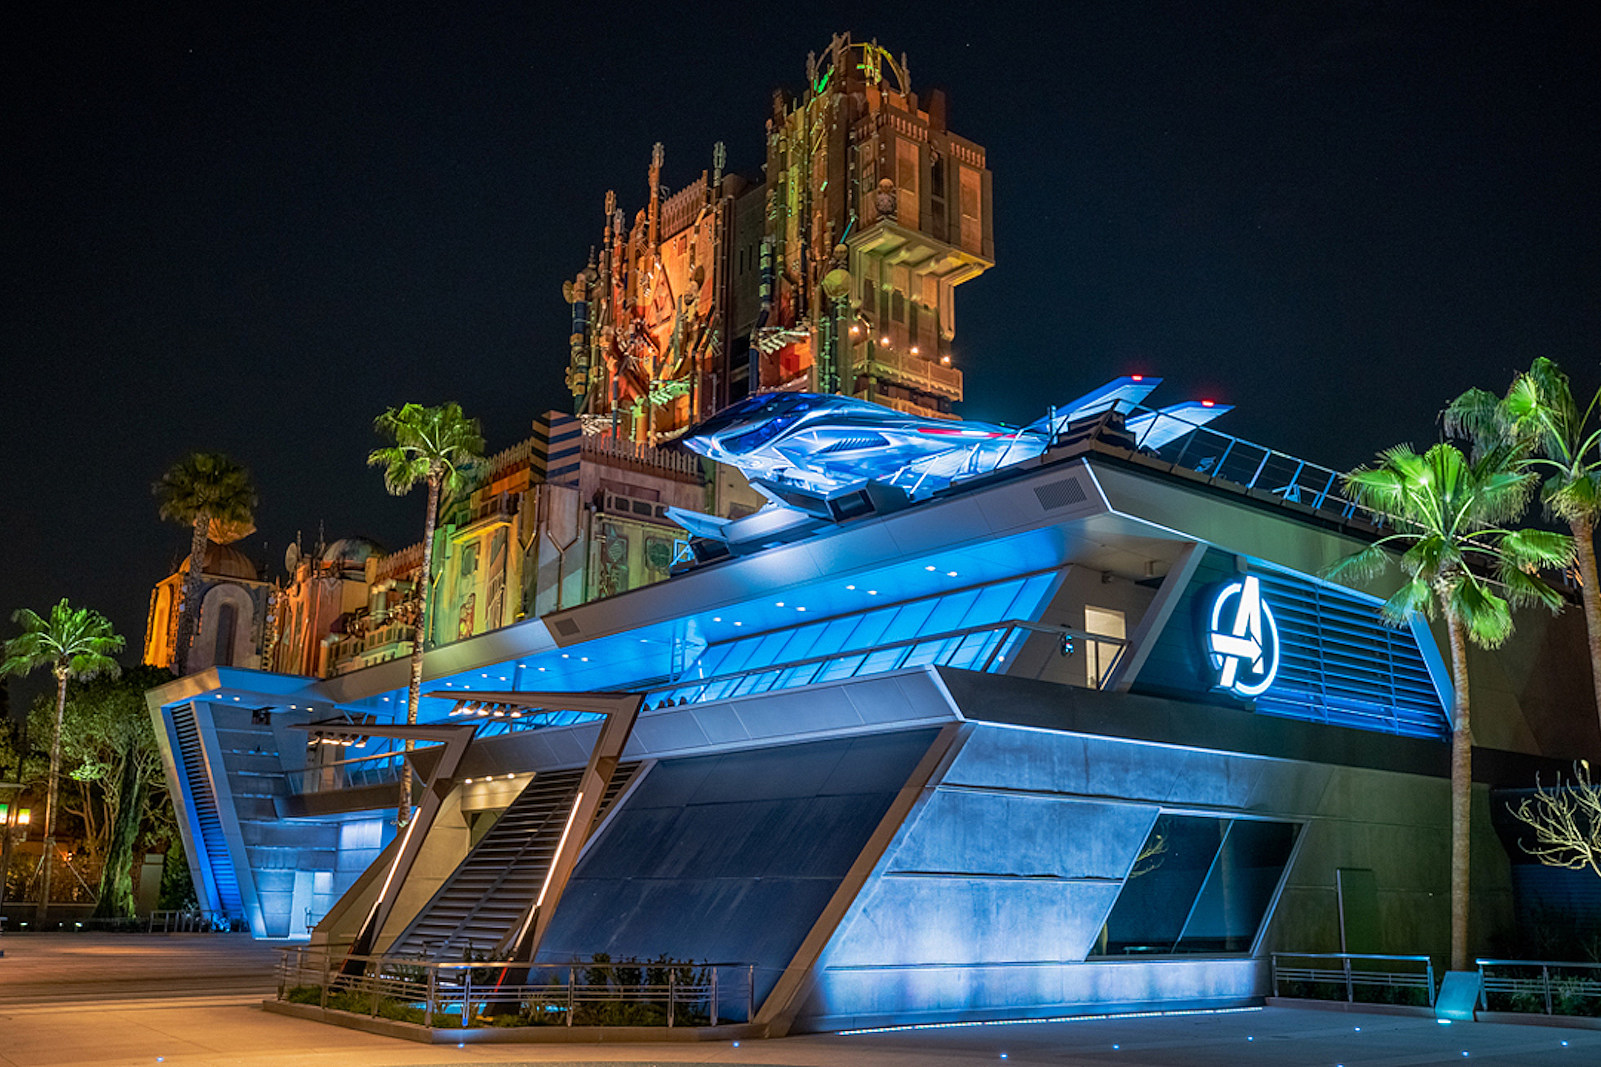 Christmas At Disneyland 2021 Dates Disneyland Reveals First Look Opening Date For Avengers Campus